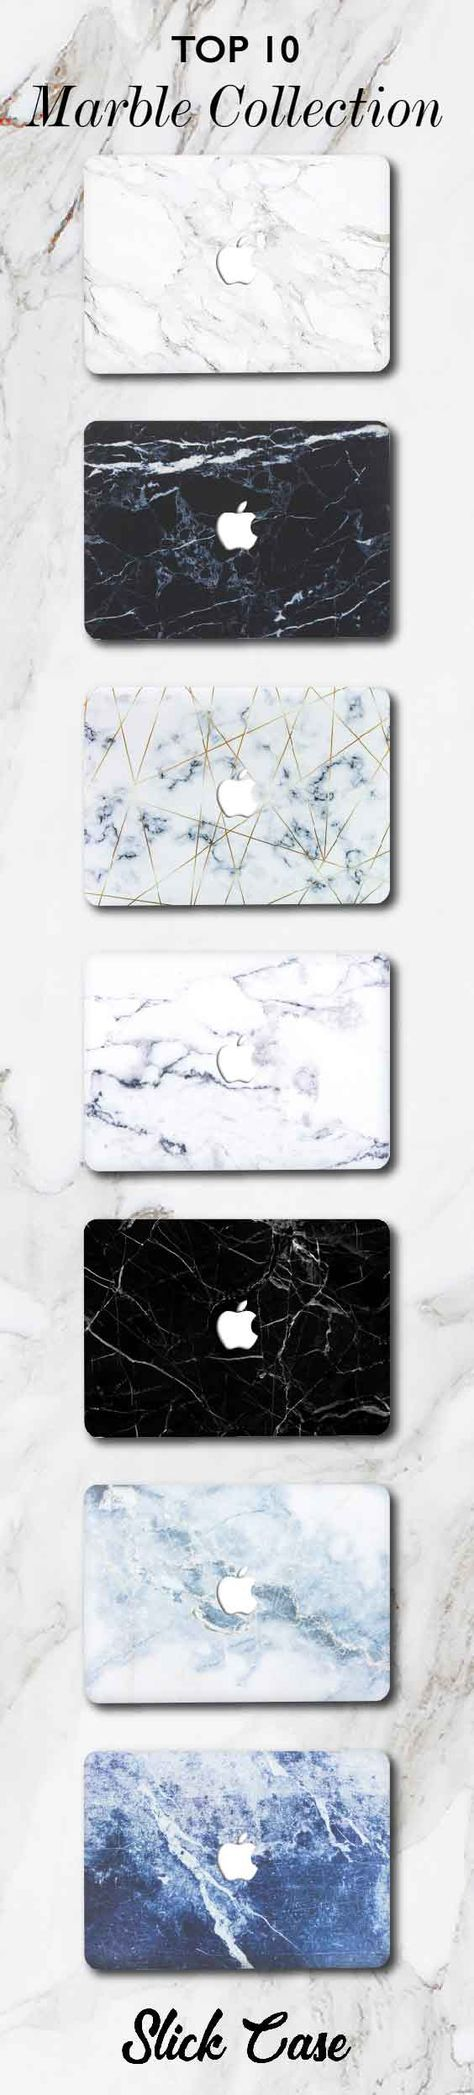 A collection of Marbleous cases designed to adorn and protect Apple MacBook laptops with the look of tinted and monochromatic marble.